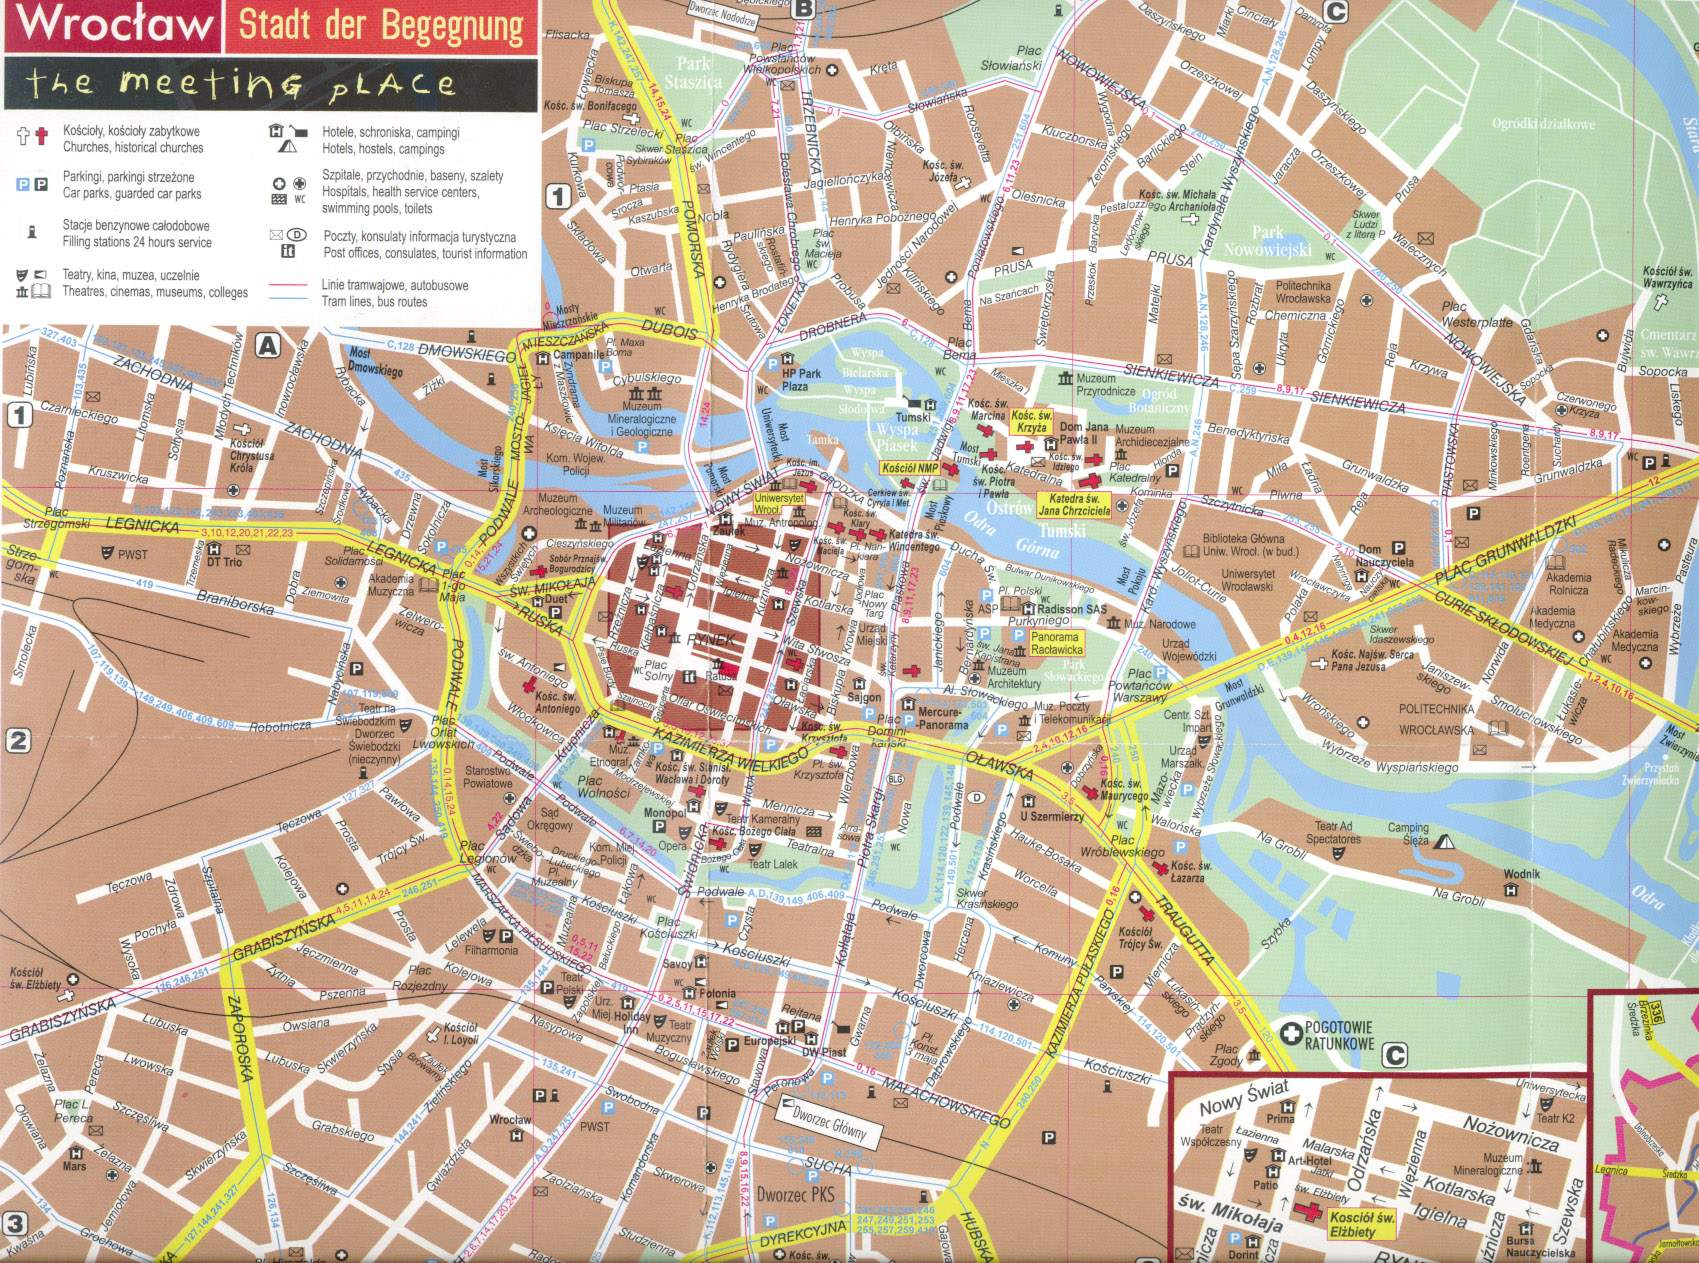 Map Of Wroclaw Poland Large Wroclaw Maps for Free Download and Print | High Resolution